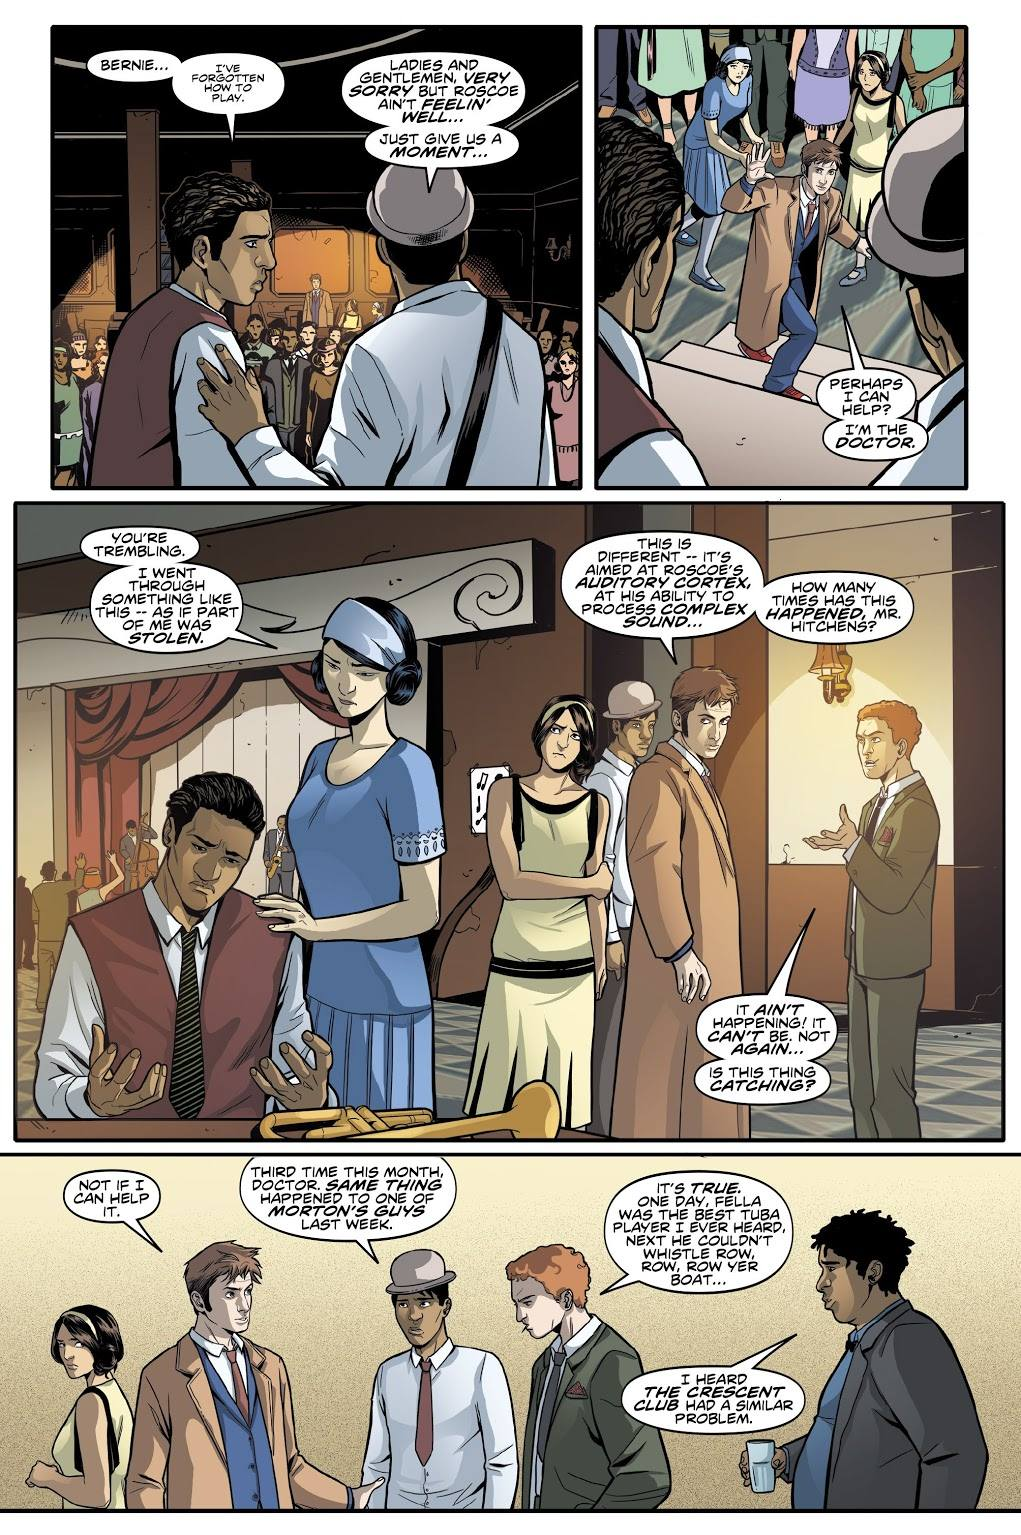 Doctor Who The Tenth Doctor Vol 6 Sins of the Father review